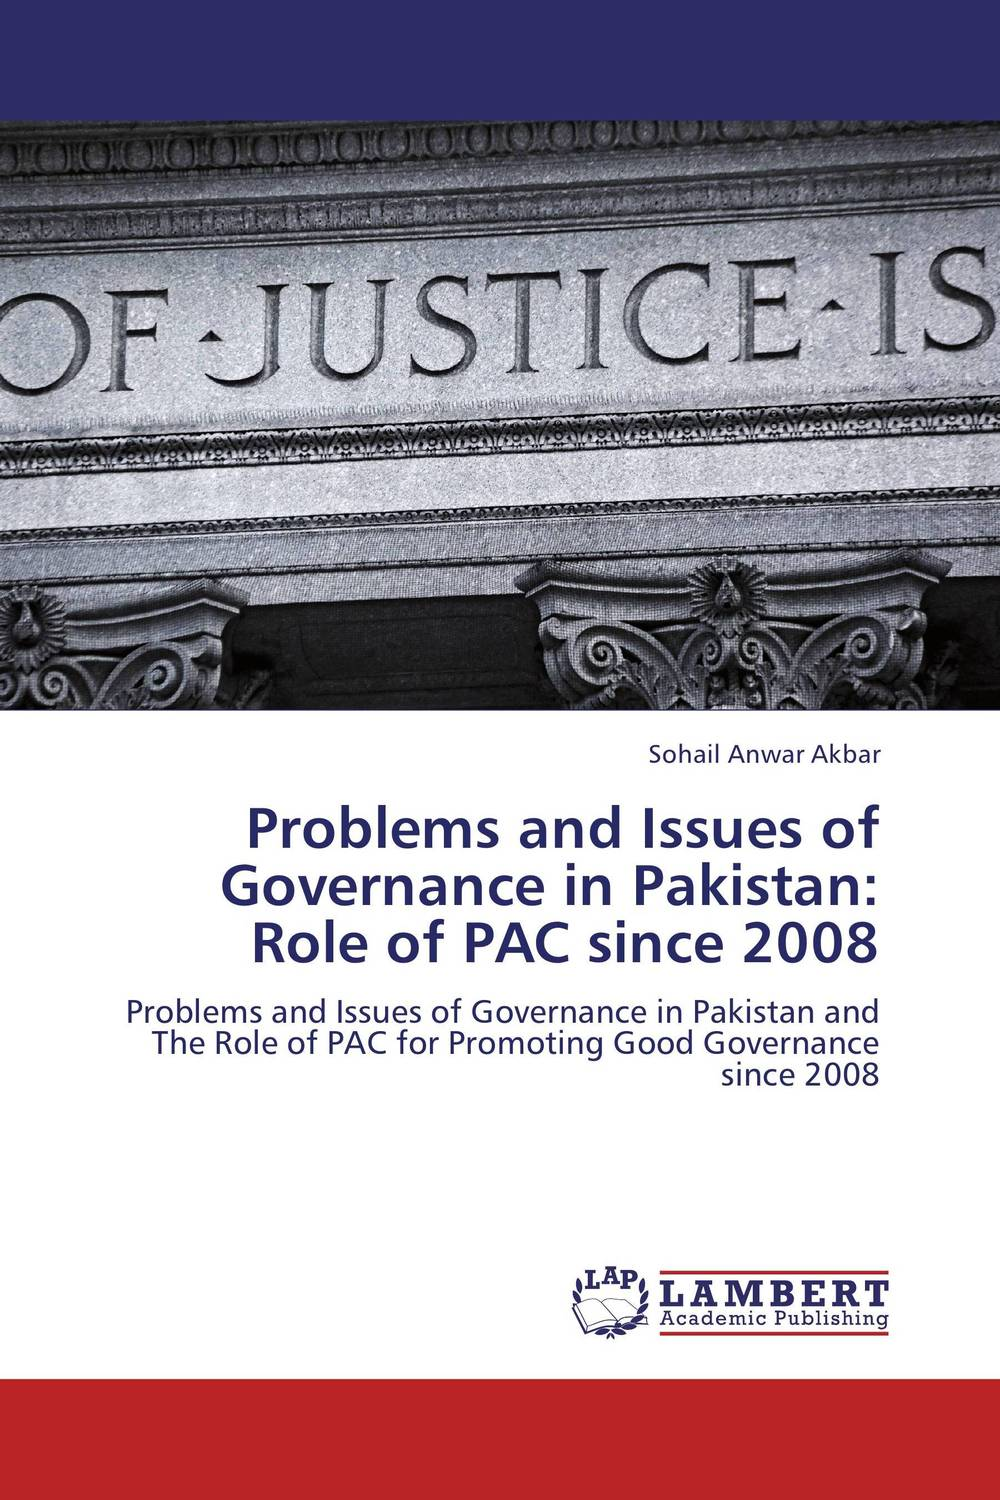 Problems and Issues of Governance in Pakistan: Role of PAC since 2008 corporate governance and firm value